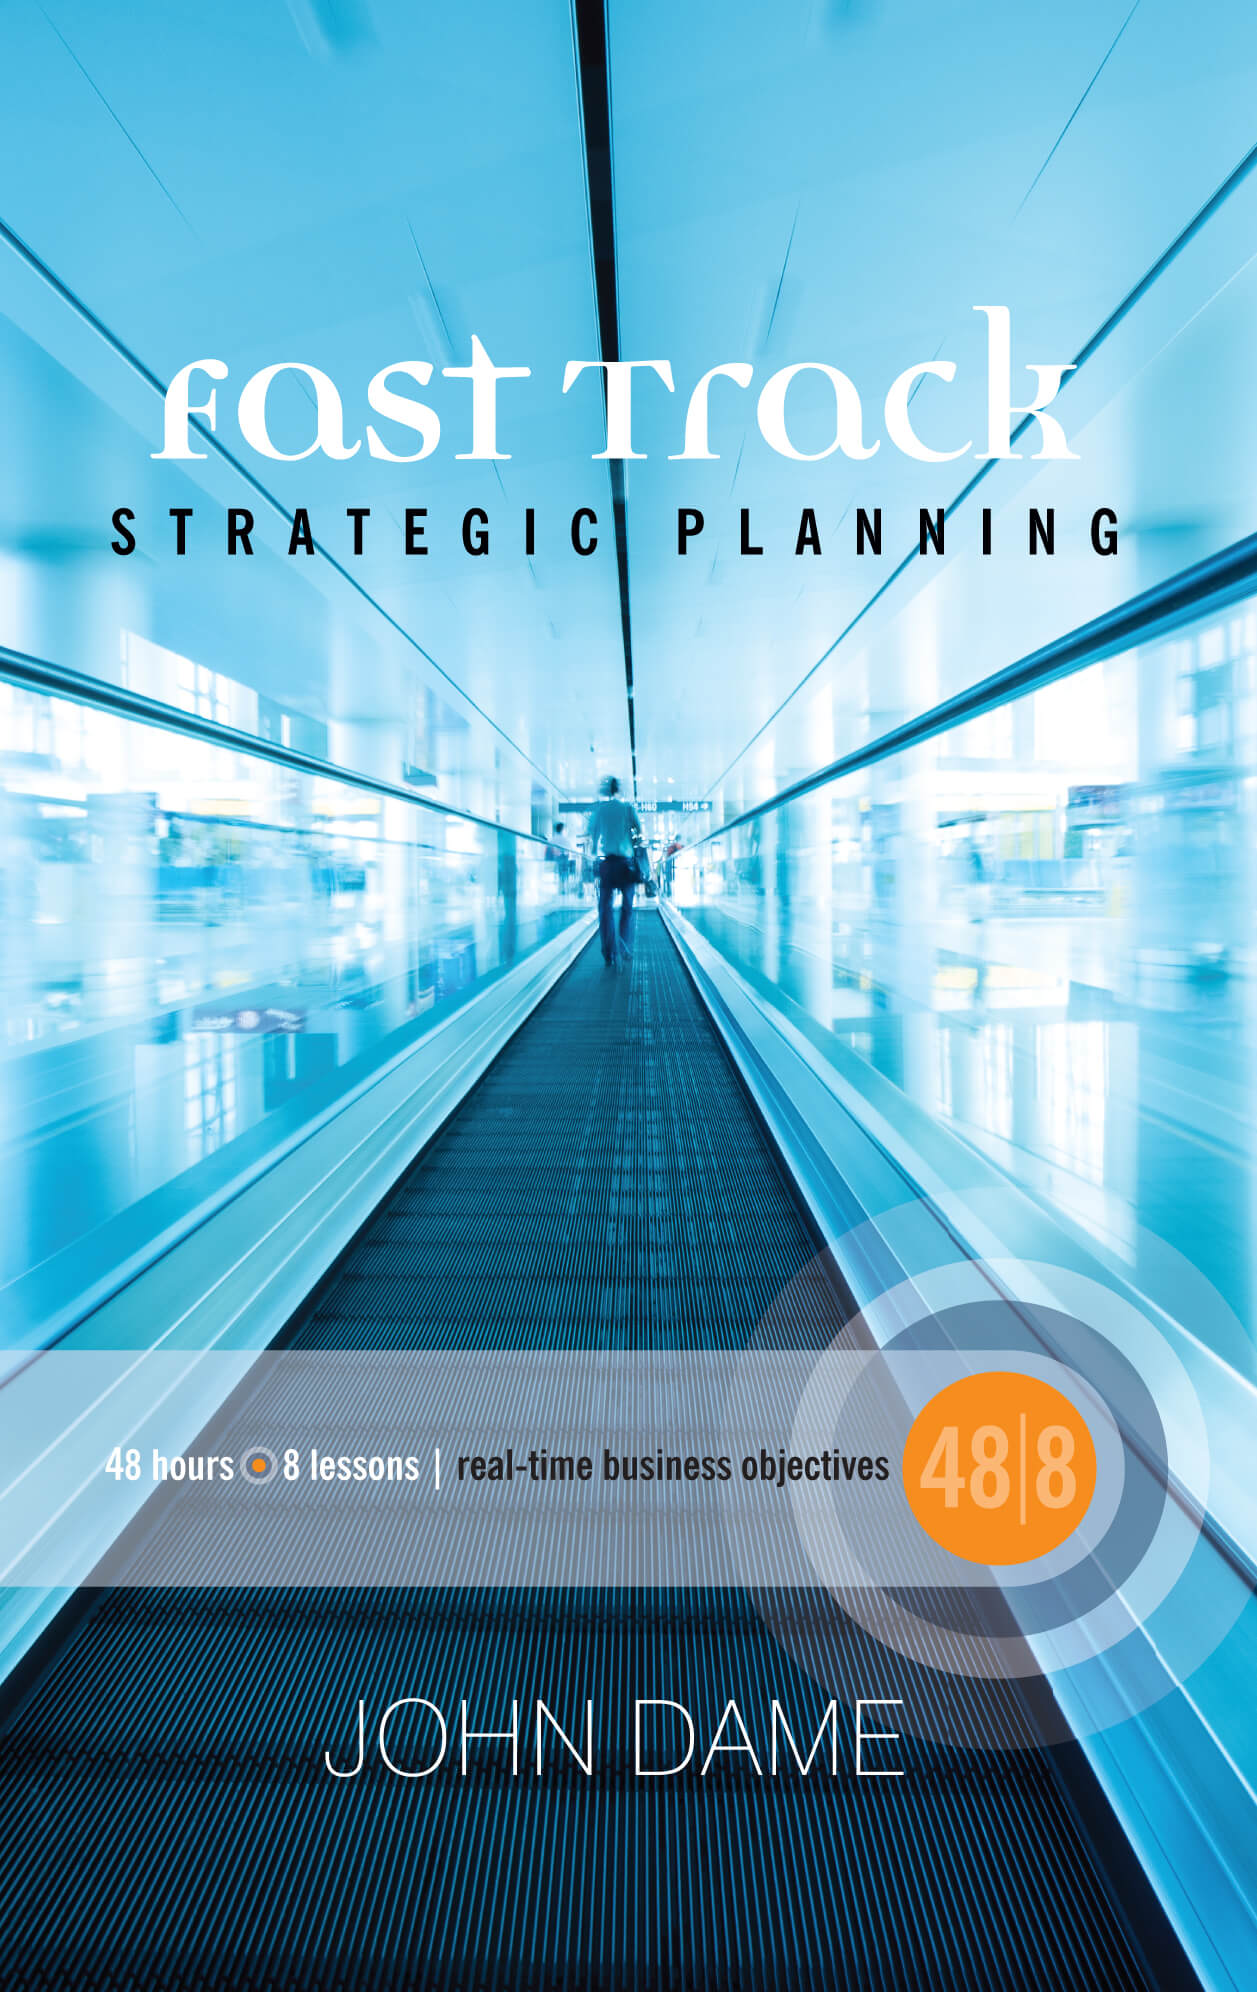 Fast Track Strategic Planning book cover